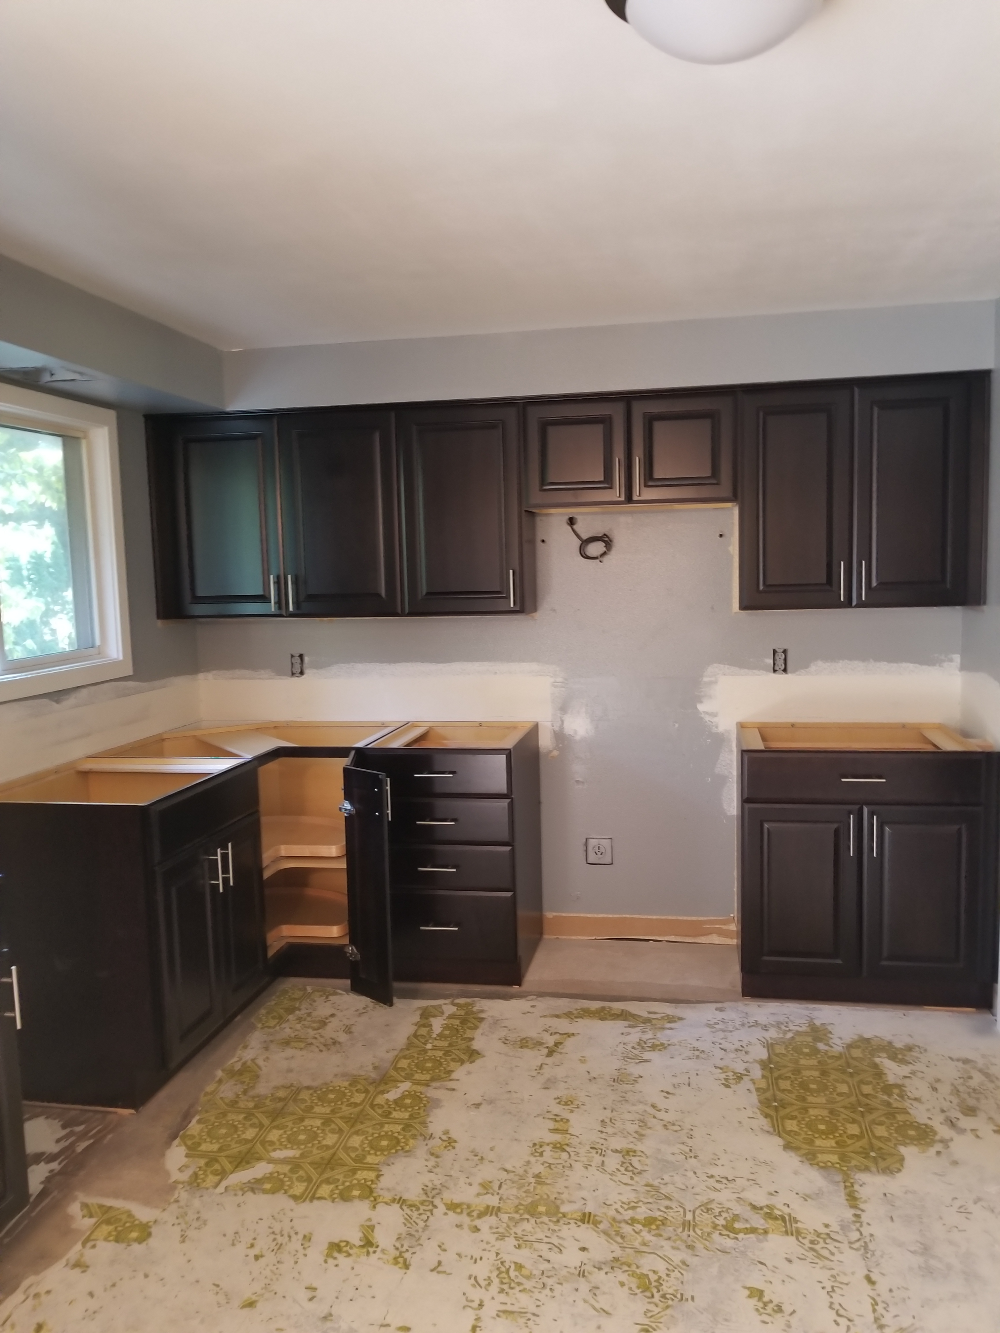 Kitchen Cabinet Doors Lowes 2020 Kitchen Cabinet Doors Lowes 2020 Super Modern Fa In 2020 Unfinished Kitchen Cabinets Painting Kitchen Cabinets Kitchen Cabinets